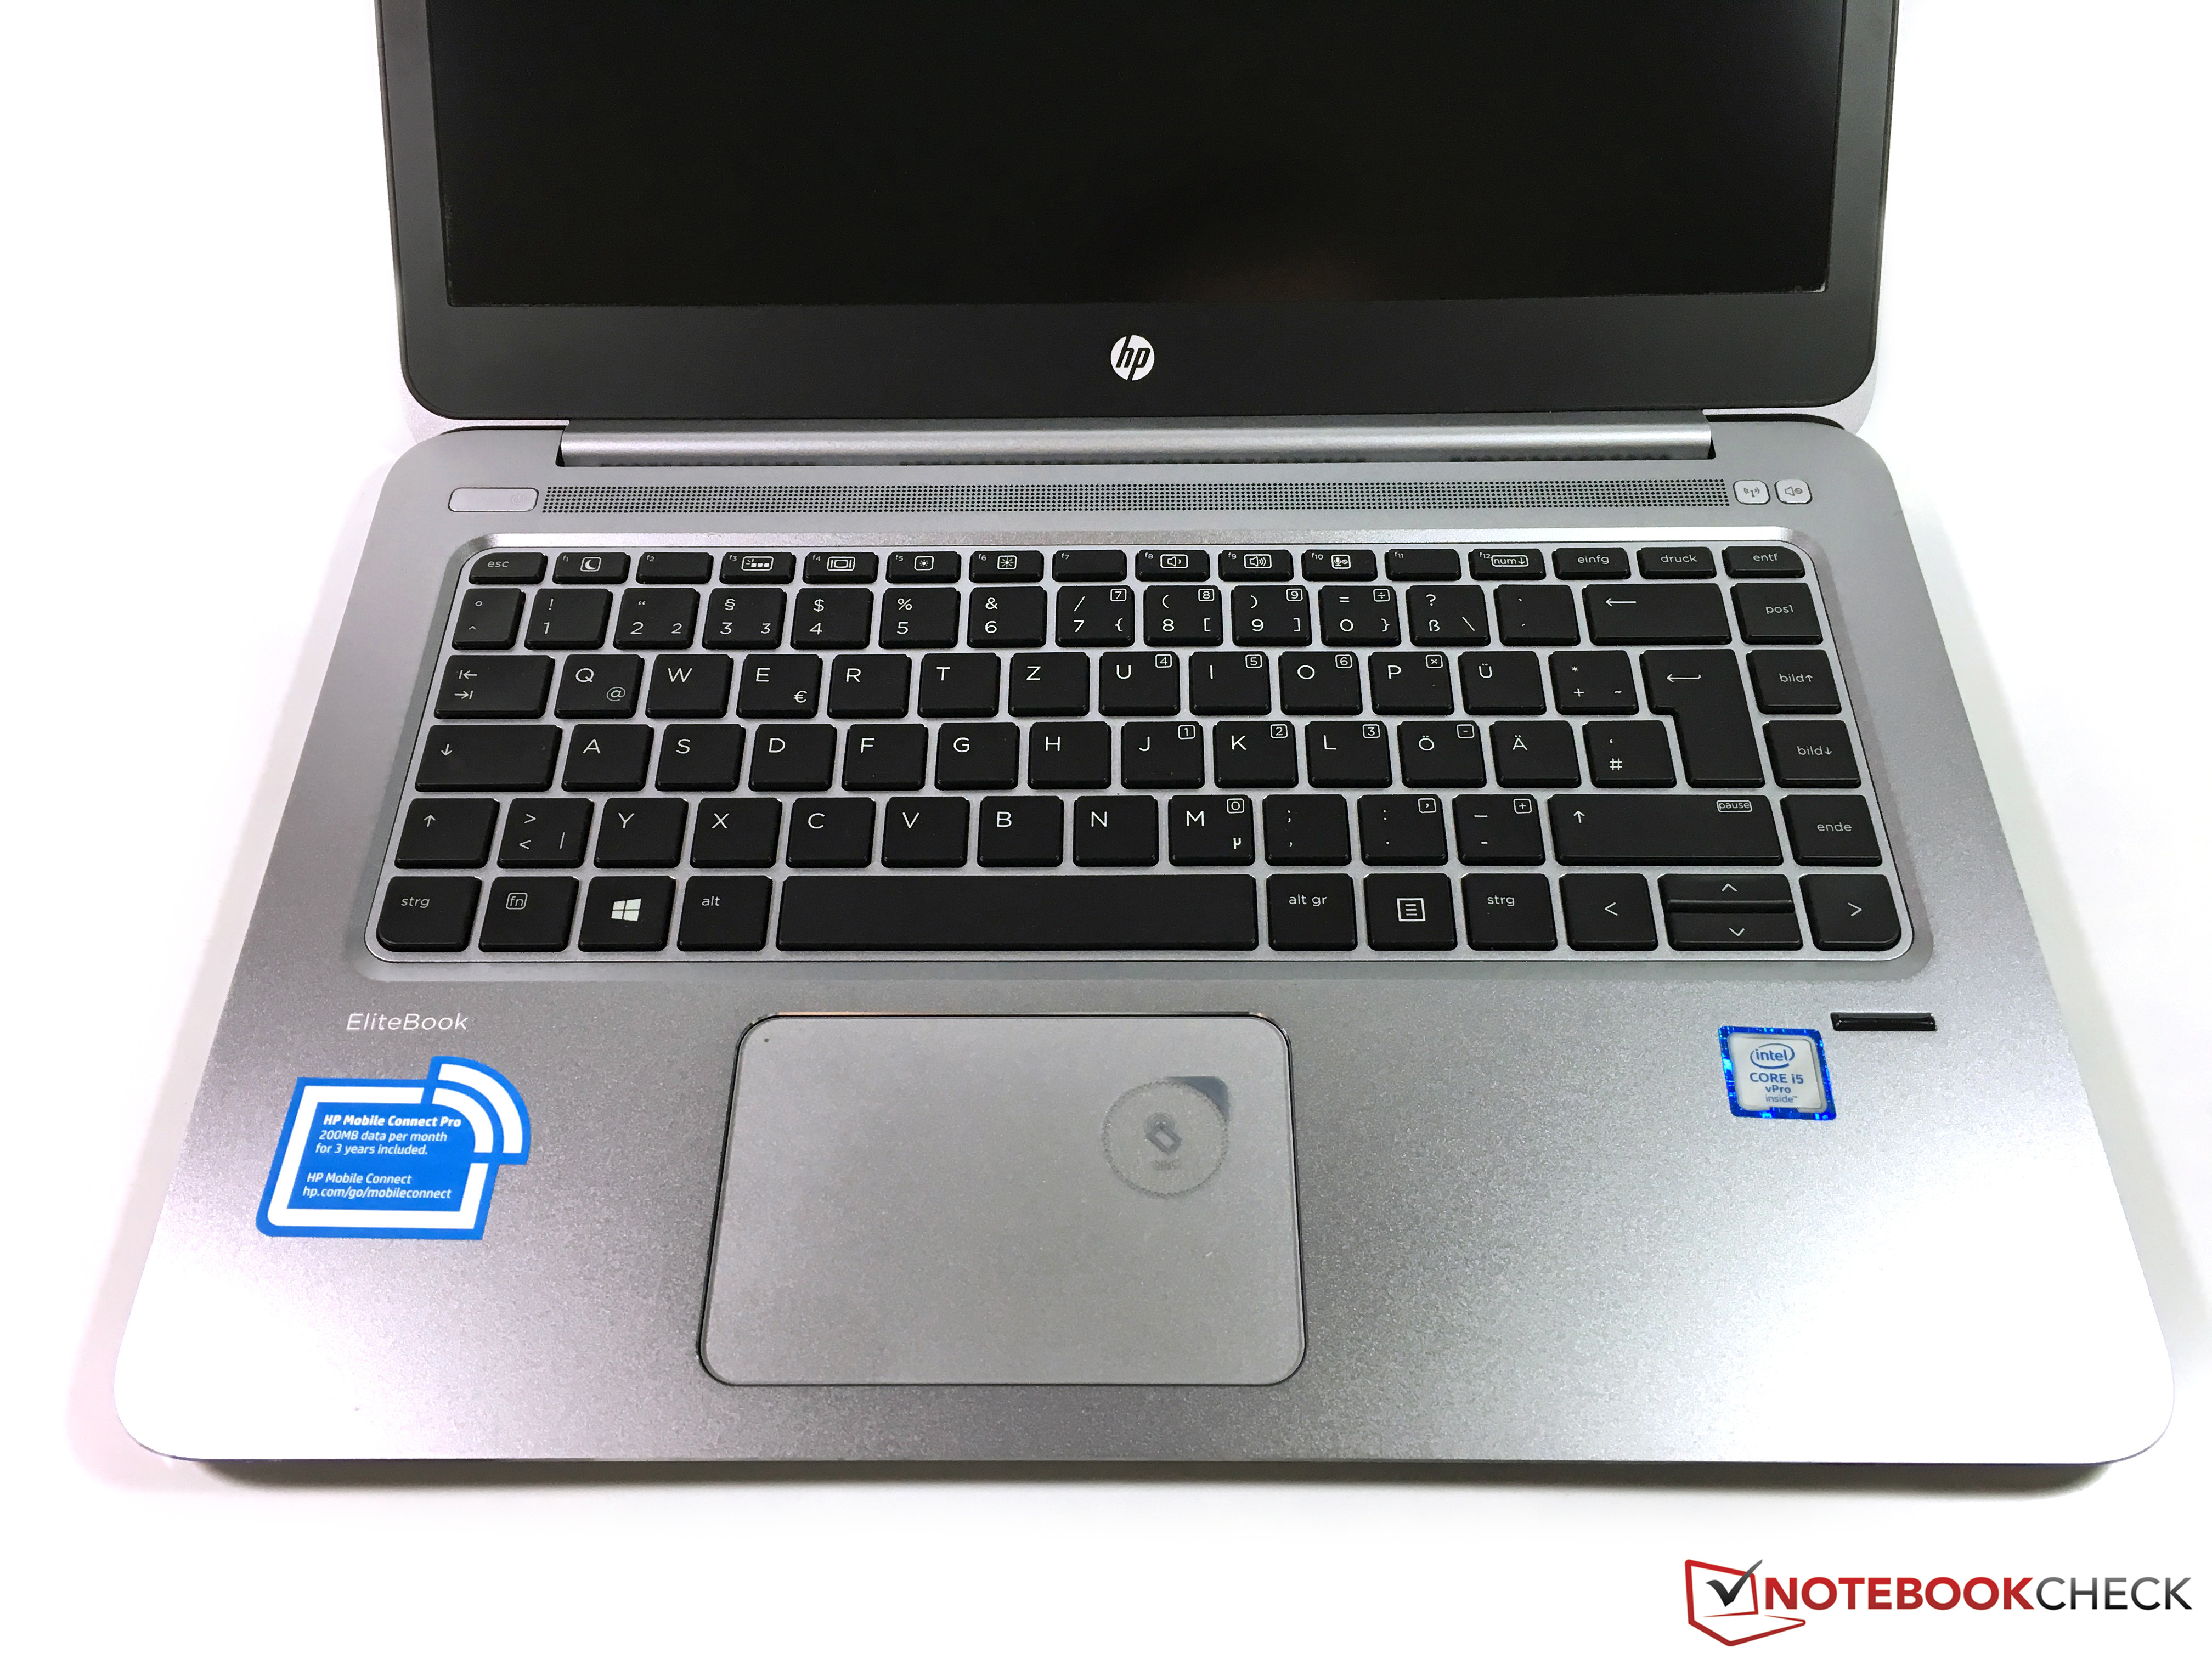 Hp Pavilion 17 E116dx furthermore Hp Spectre X360 Update Ces furthermore Elitebook 840 likewise New Imac By Apple also Hp Elitebook X360. on bang olufsen keyboard